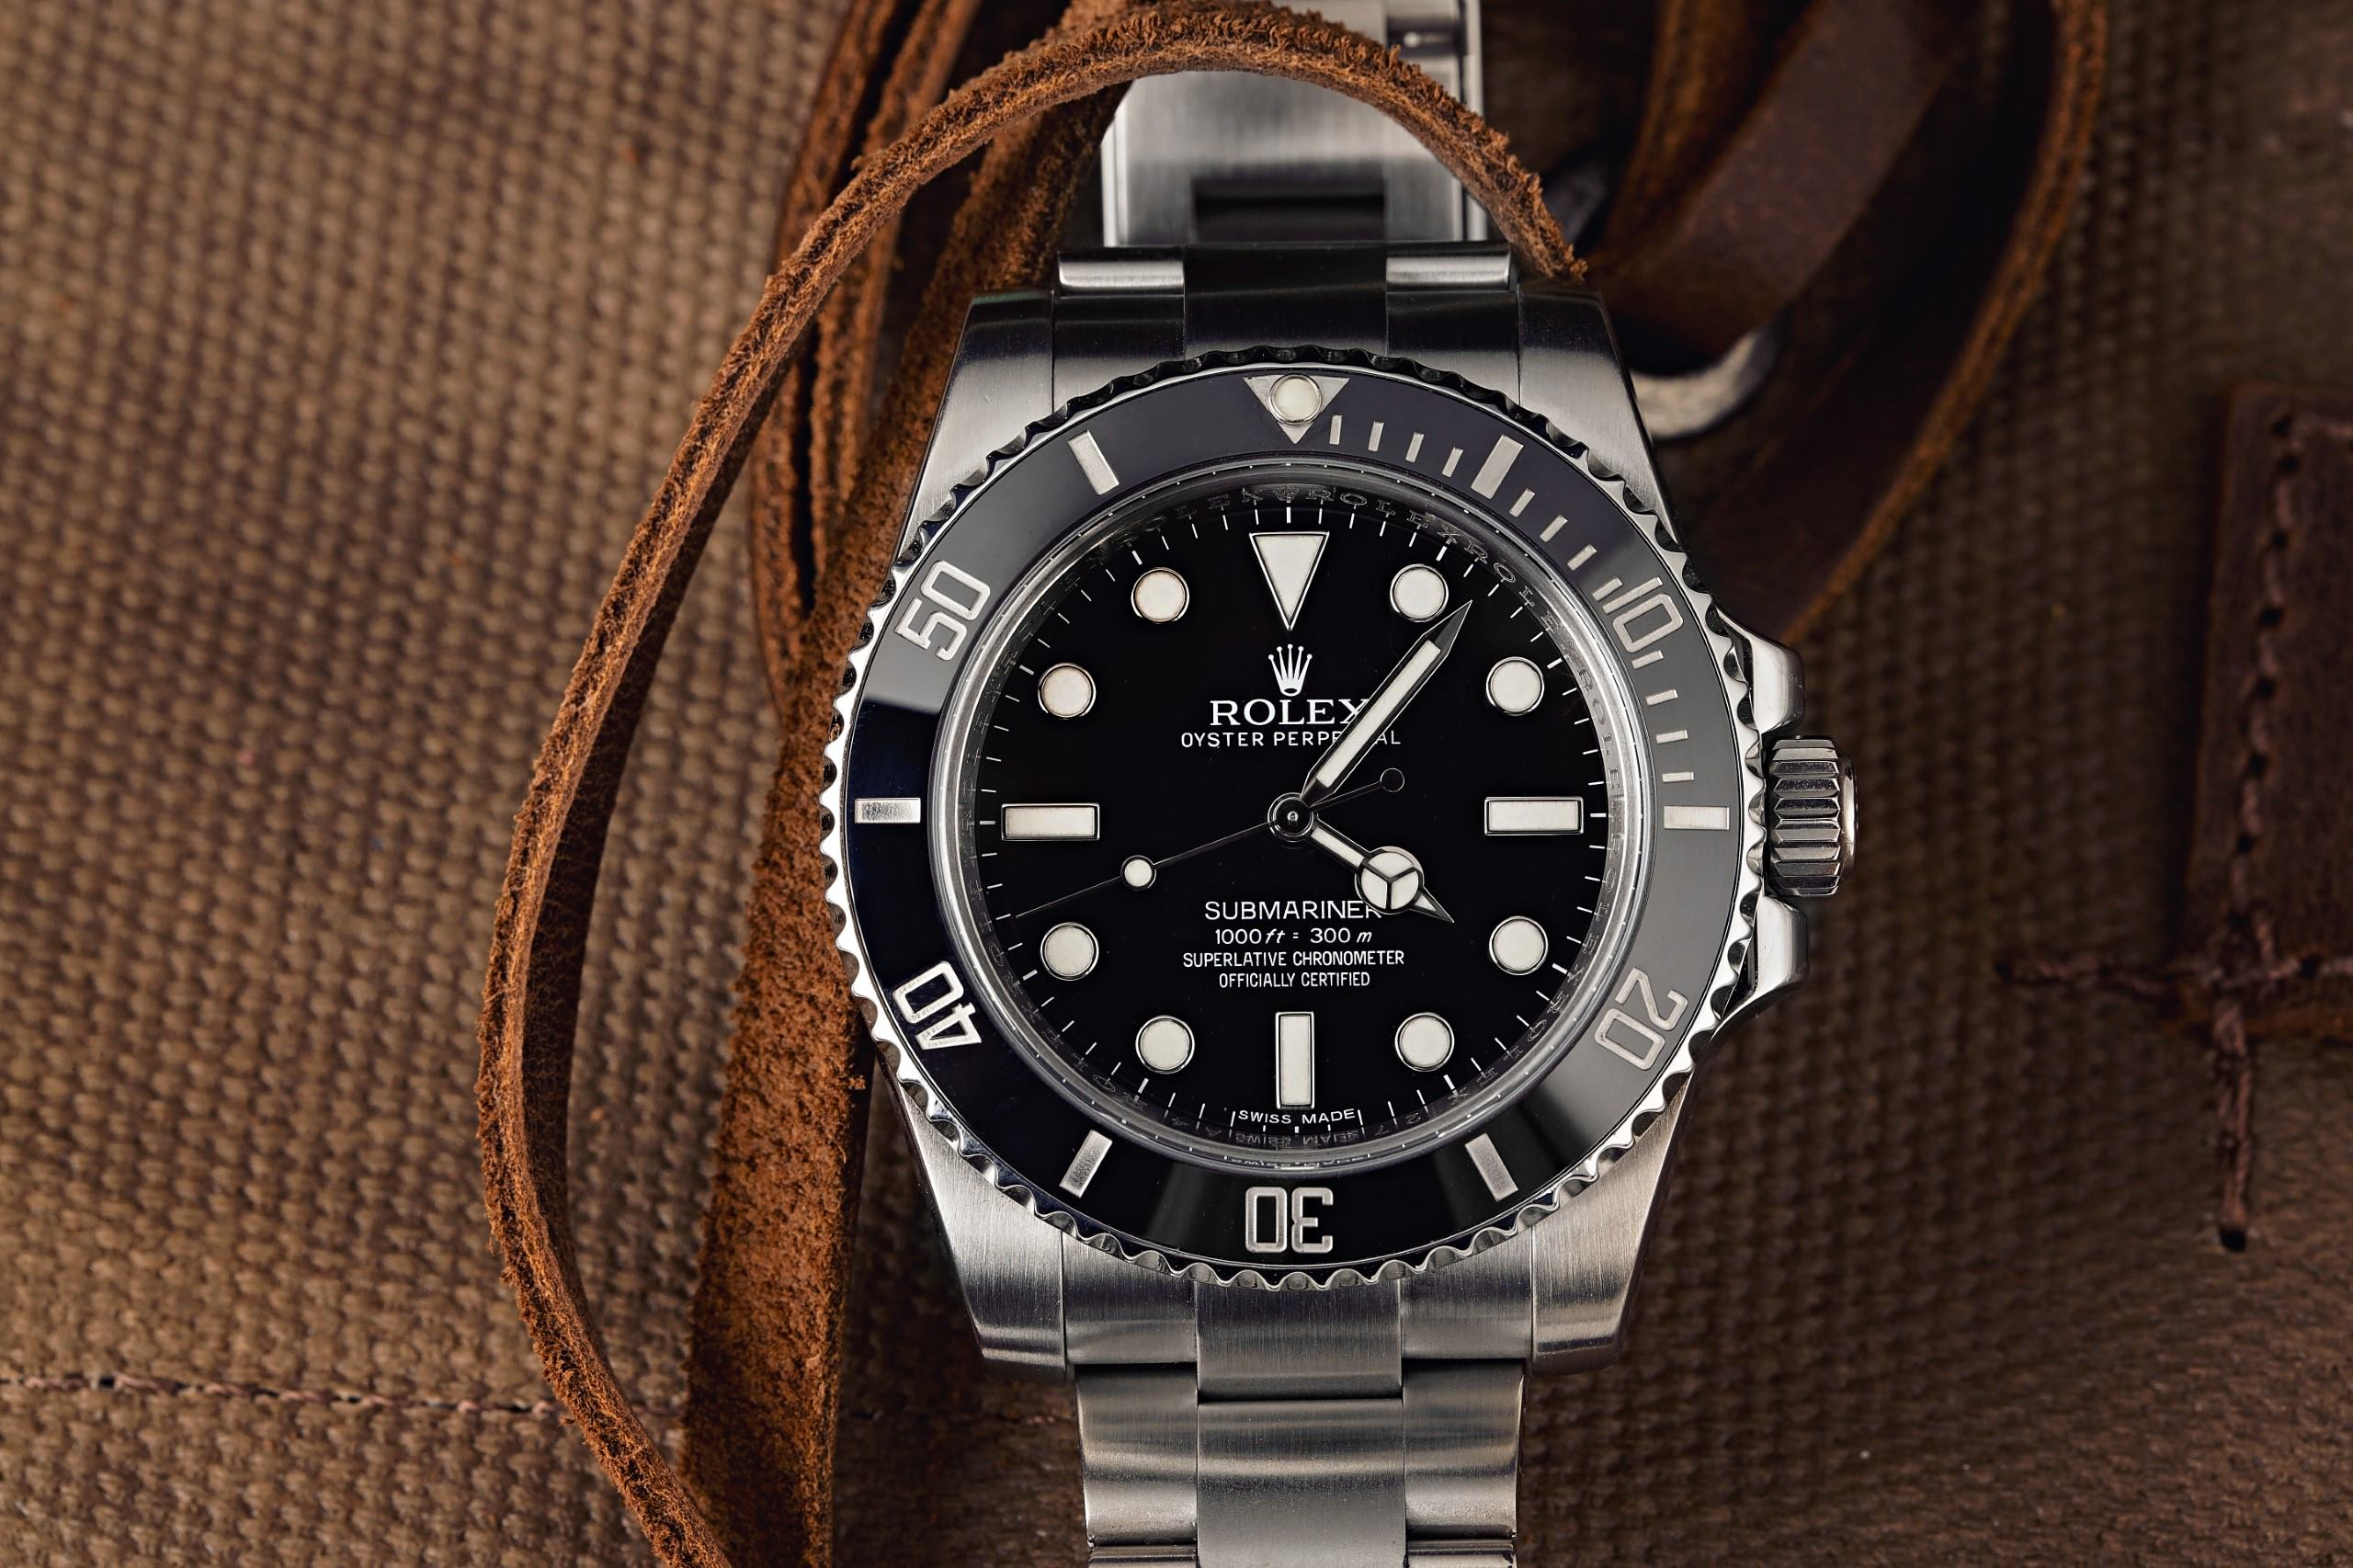 5 Best Rolex watches for men buying guide